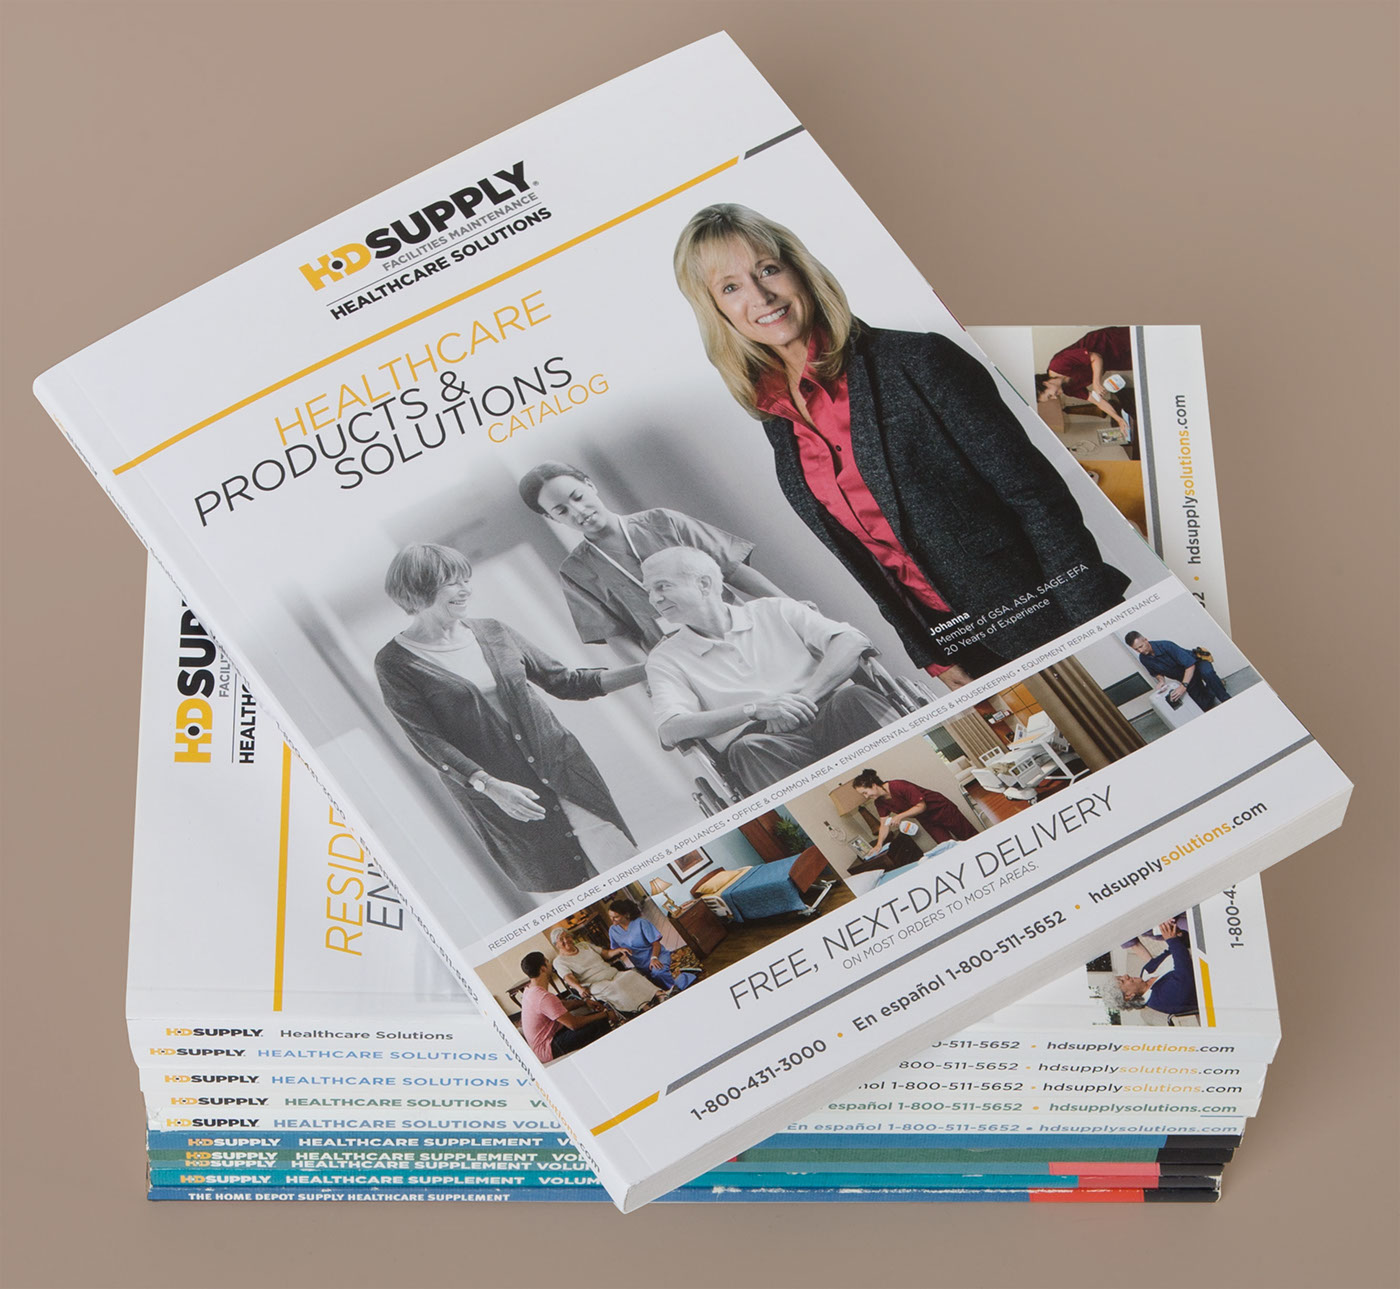 HD Supply Healthcare Catalogs on Behance